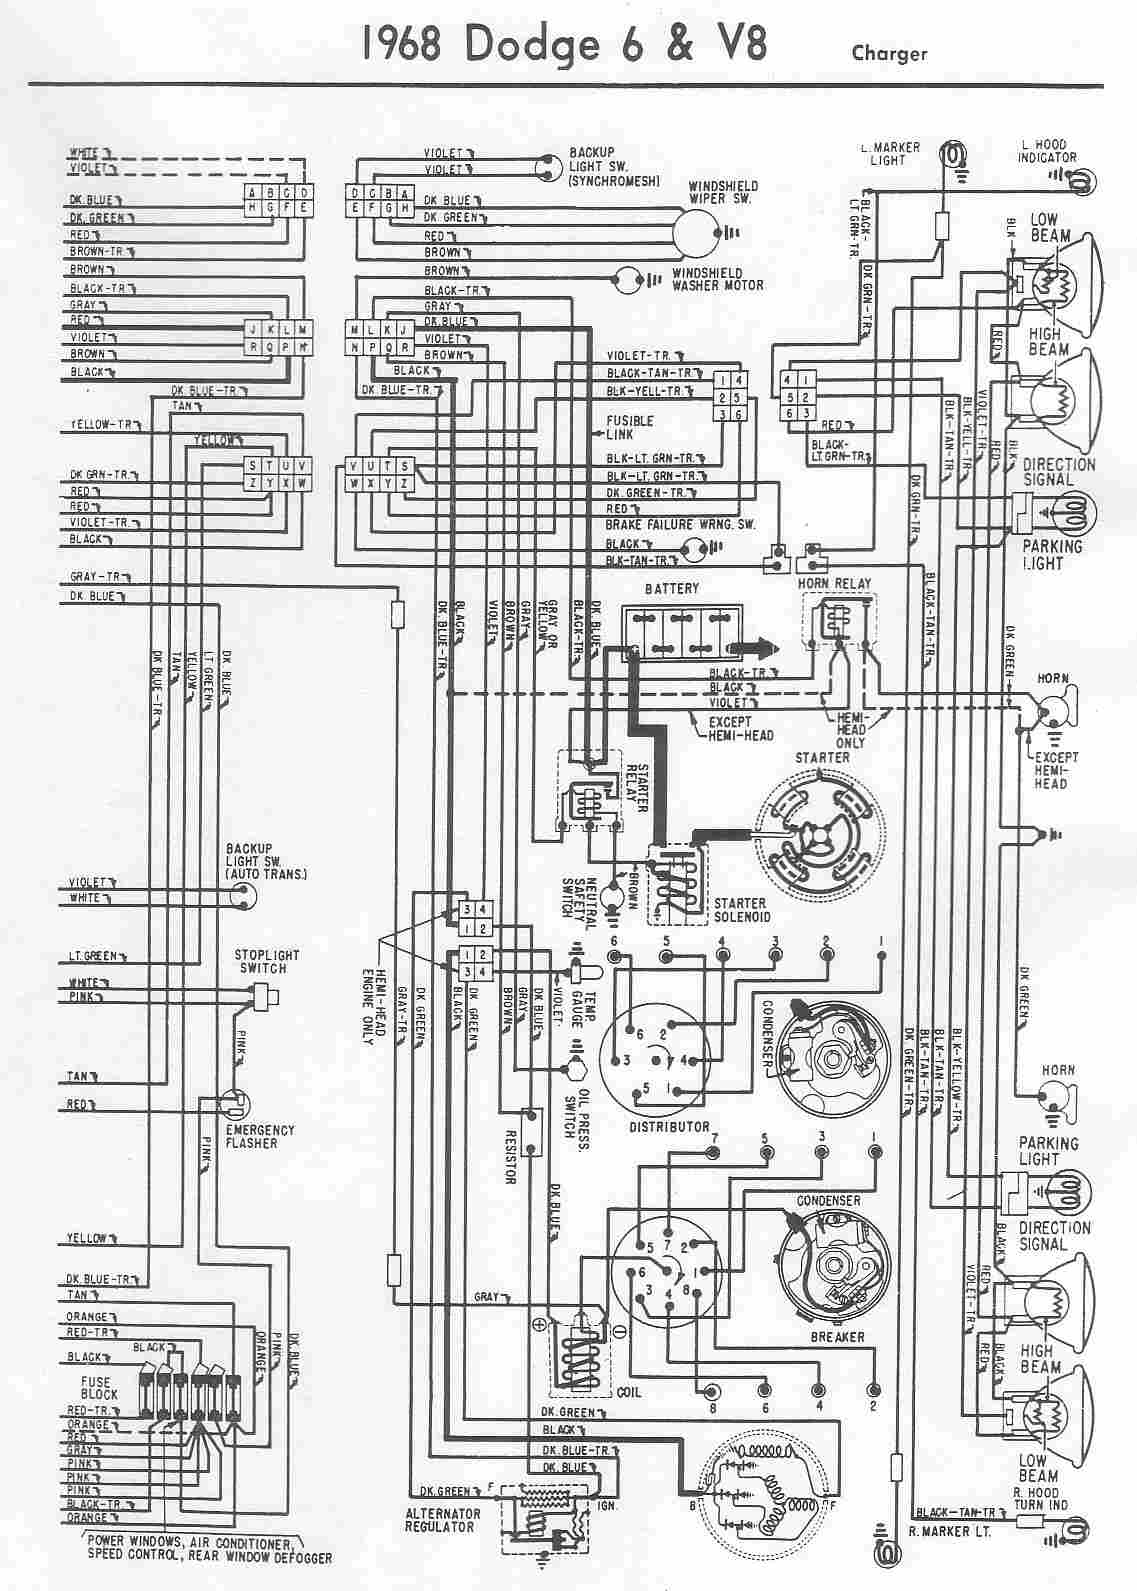 1972 dodge dart dash wiring harness 35 wiring diagram images wiring diagrams readyjetset co 1965 chevy [ 1137 x 1591 Pixel ]